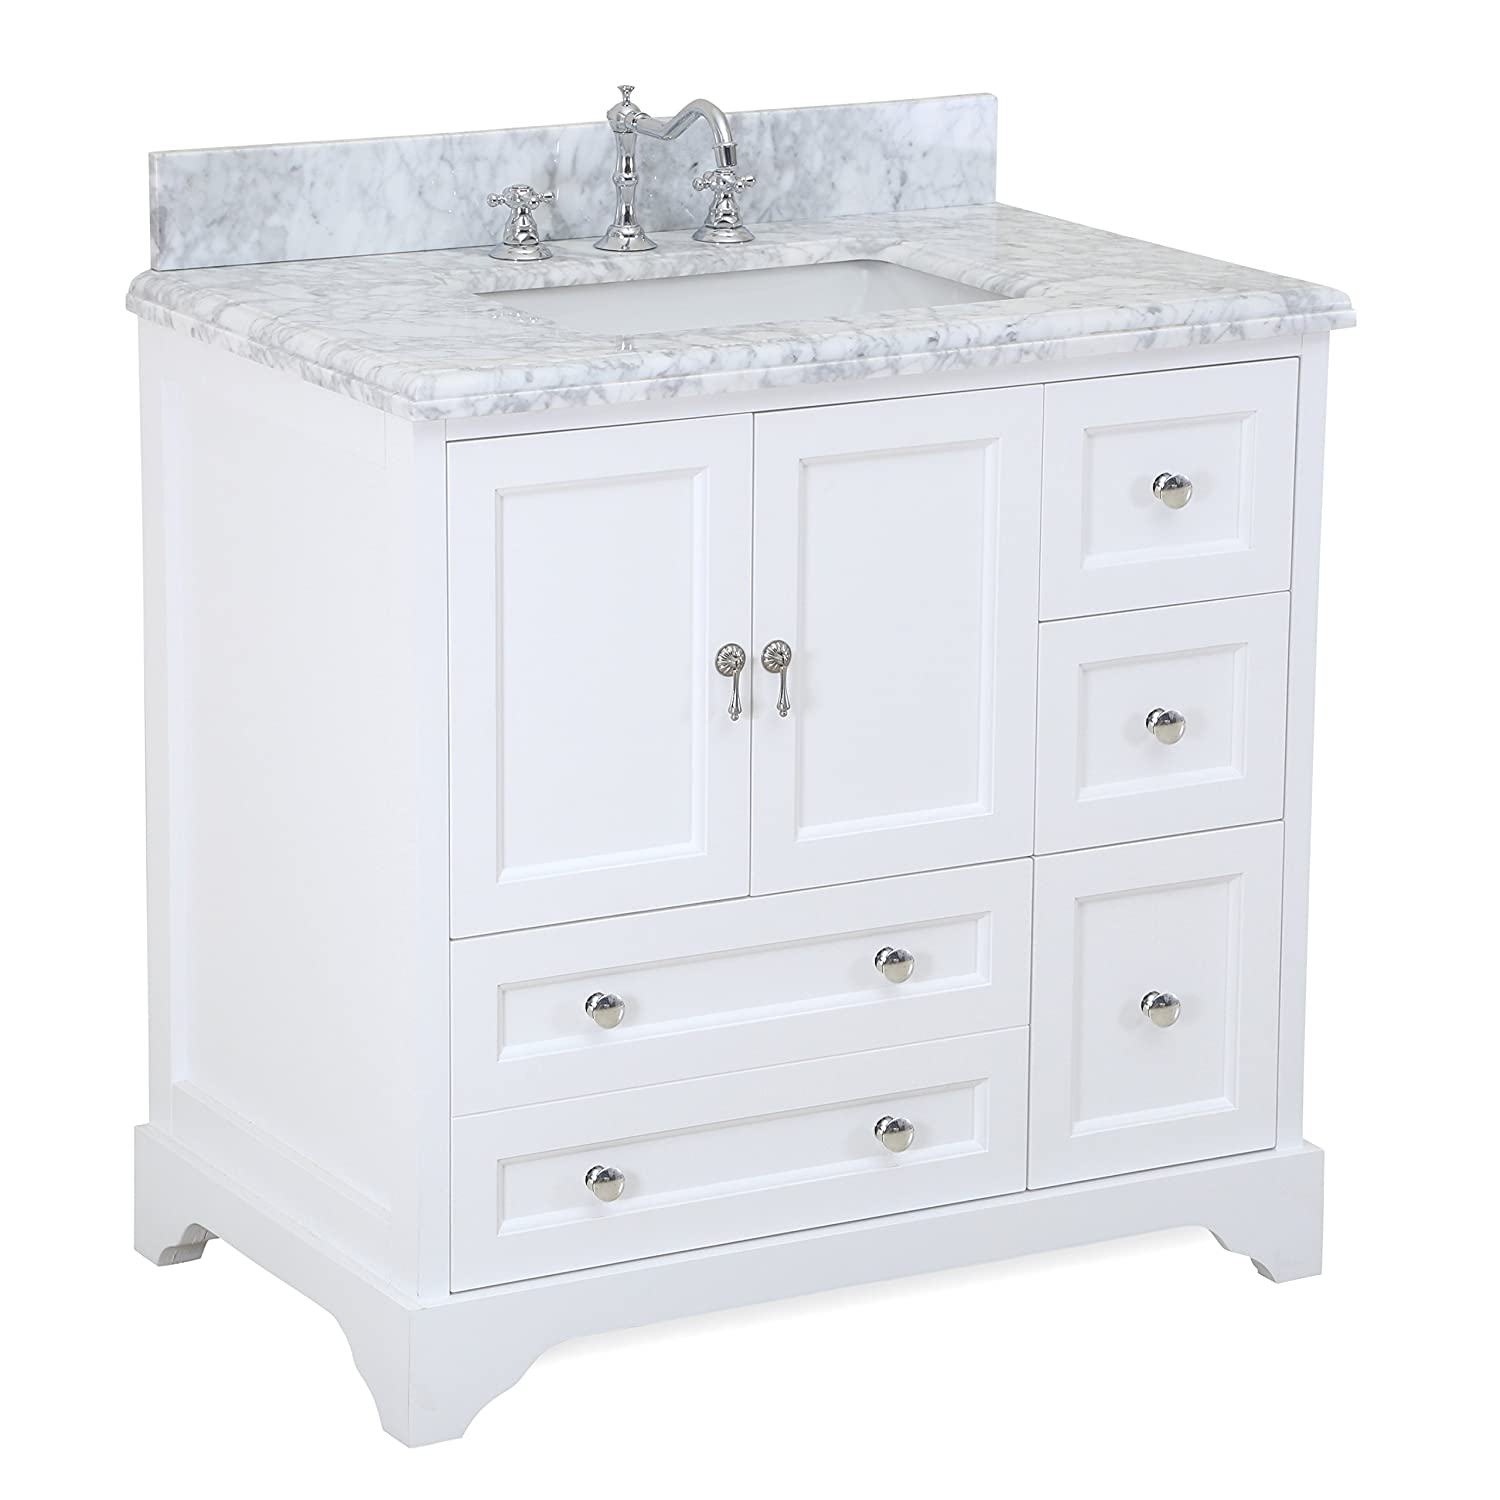 cfm classic product and guidecraftclassicwhitevanityandstool guidecraft vanities stool hayneedle vanity white